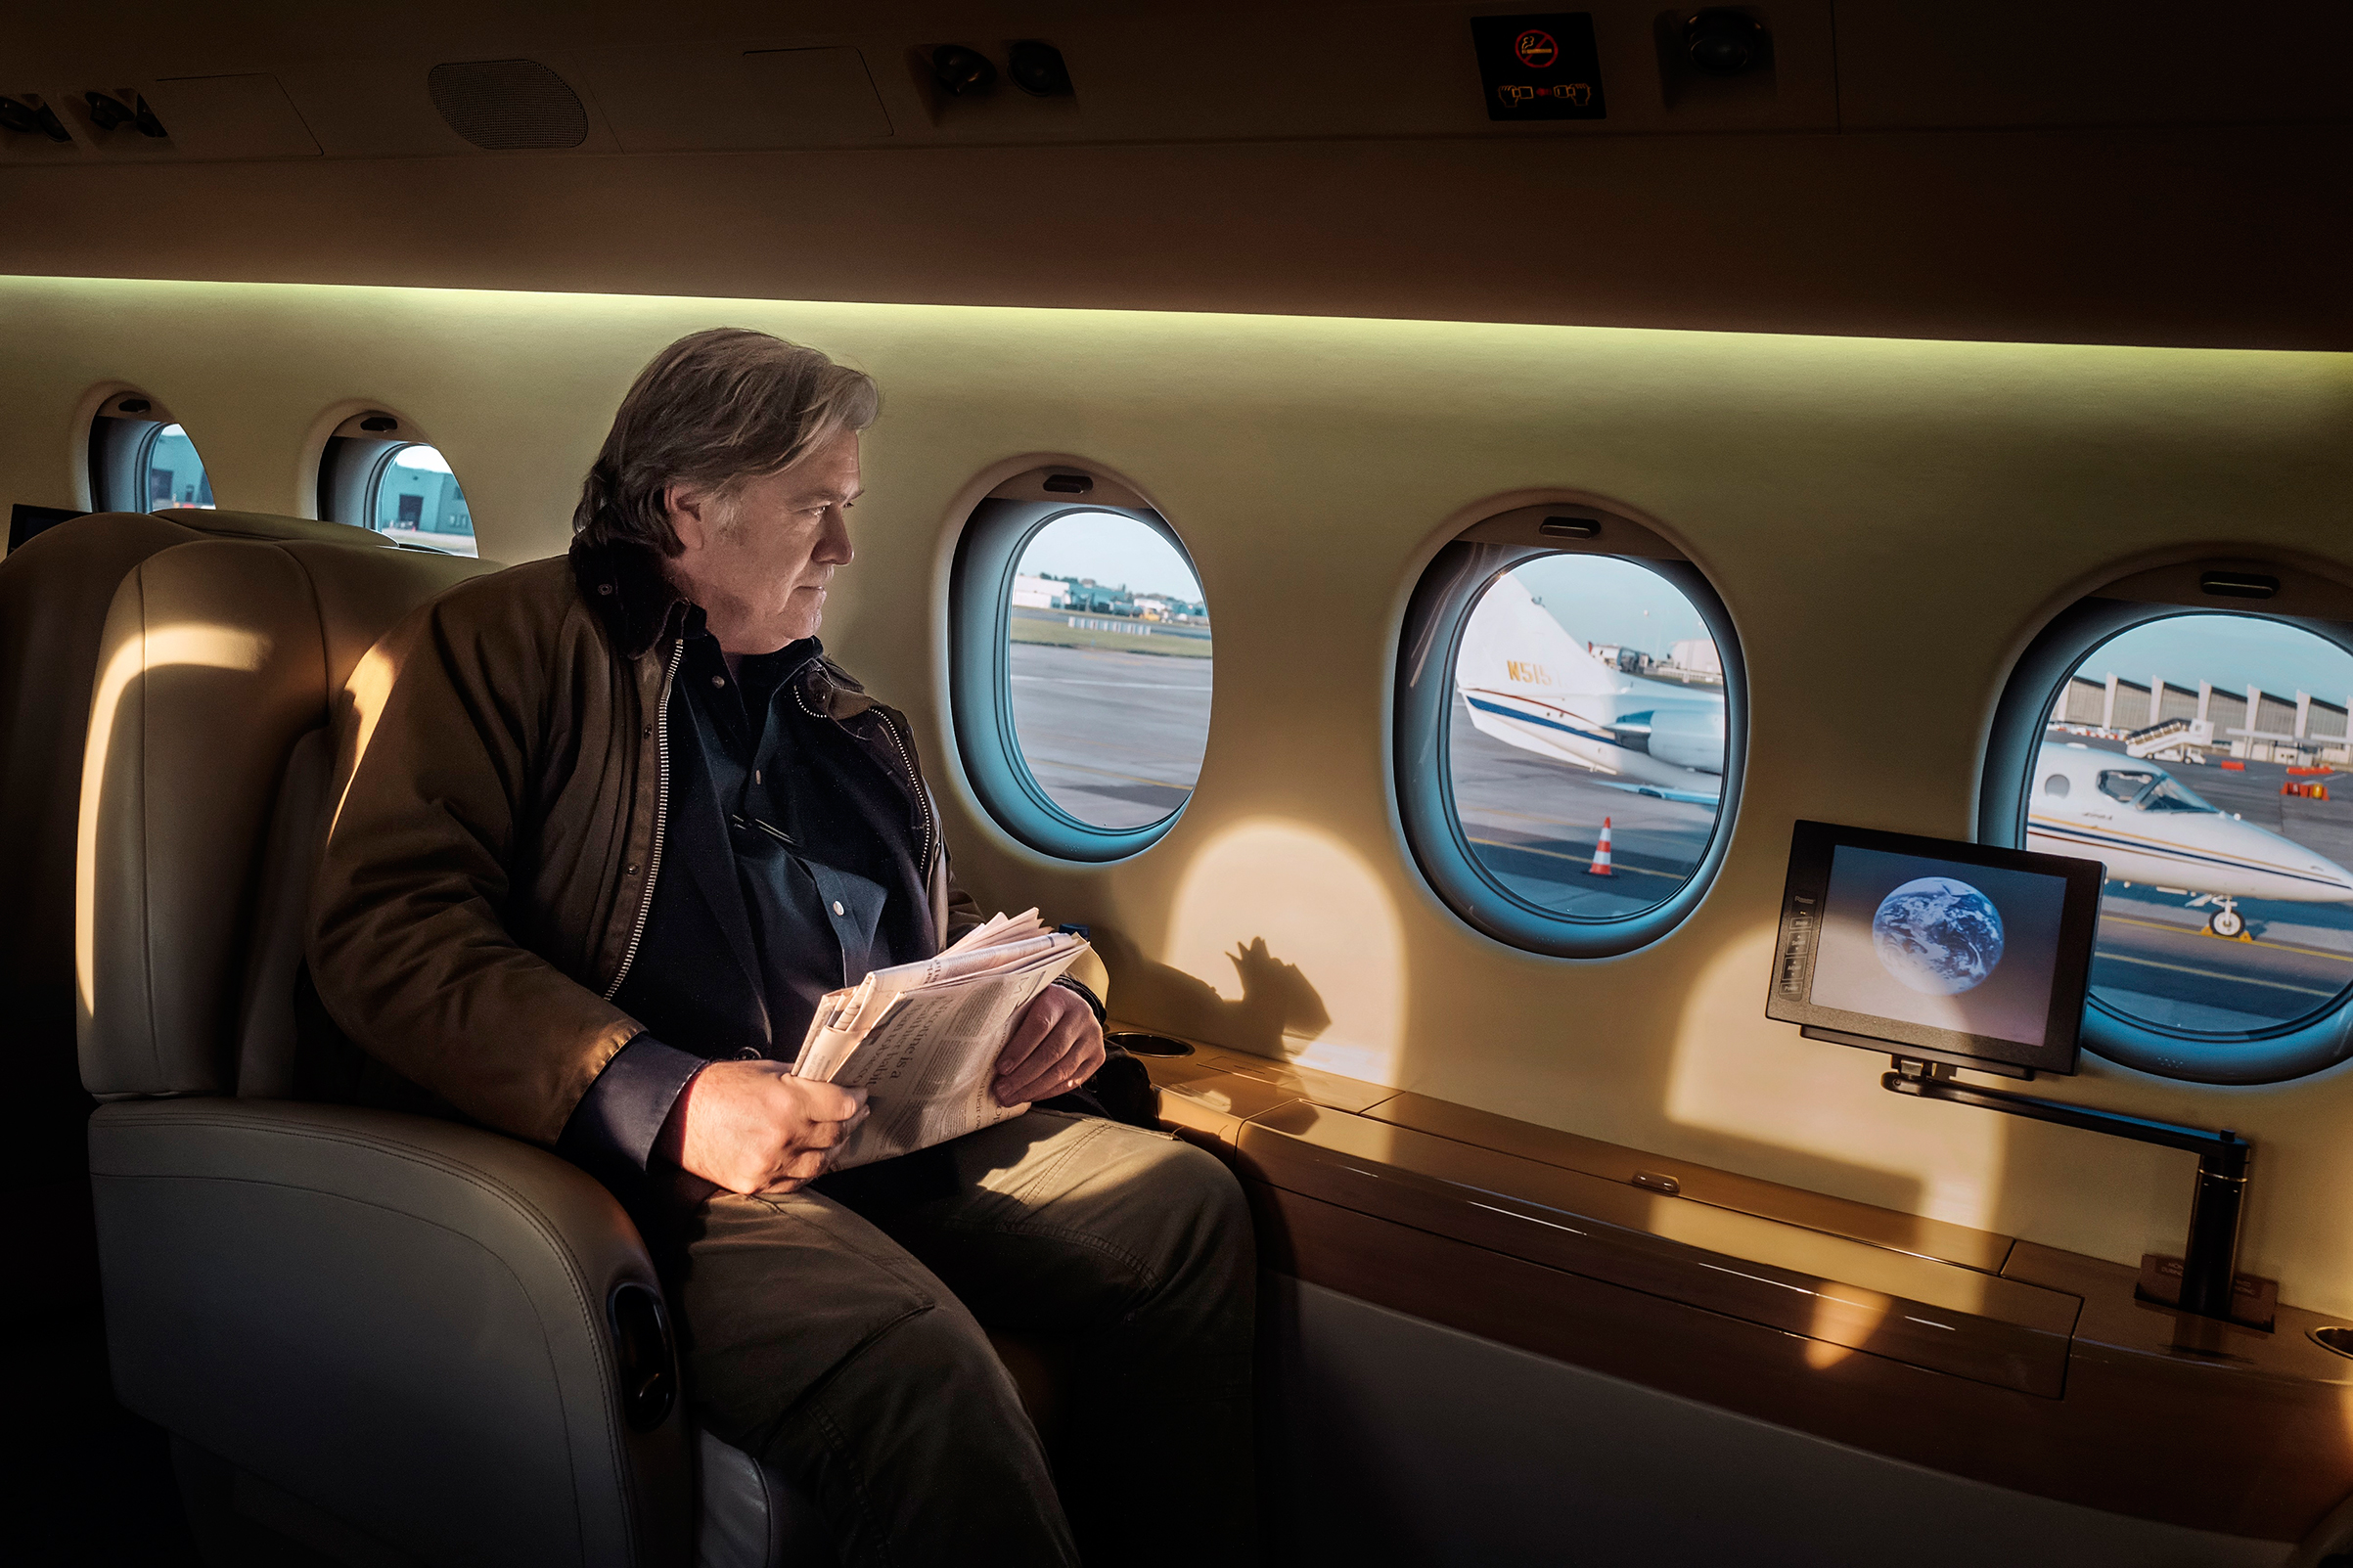 Ex–White House chief strategist Bannon on a rented private plane in Brussels heading to London